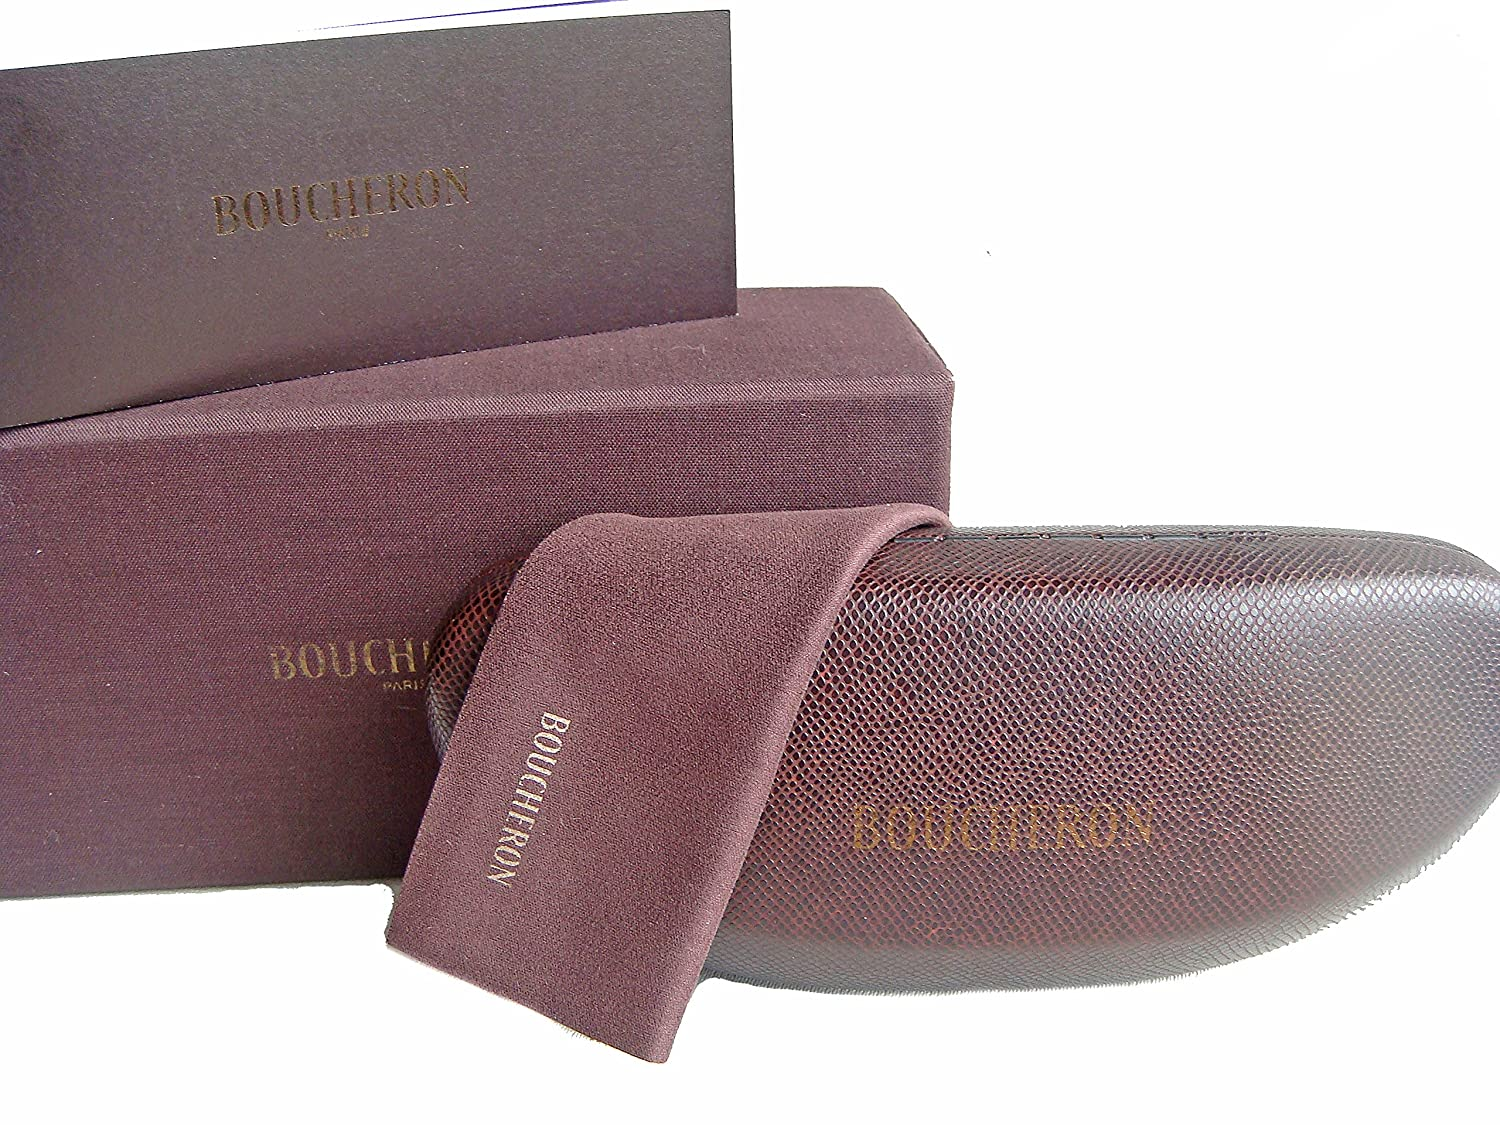 Boucheron Spectacles Glasses Eyeglasses Case + Lense Cloth + Authenticity Card Boxed